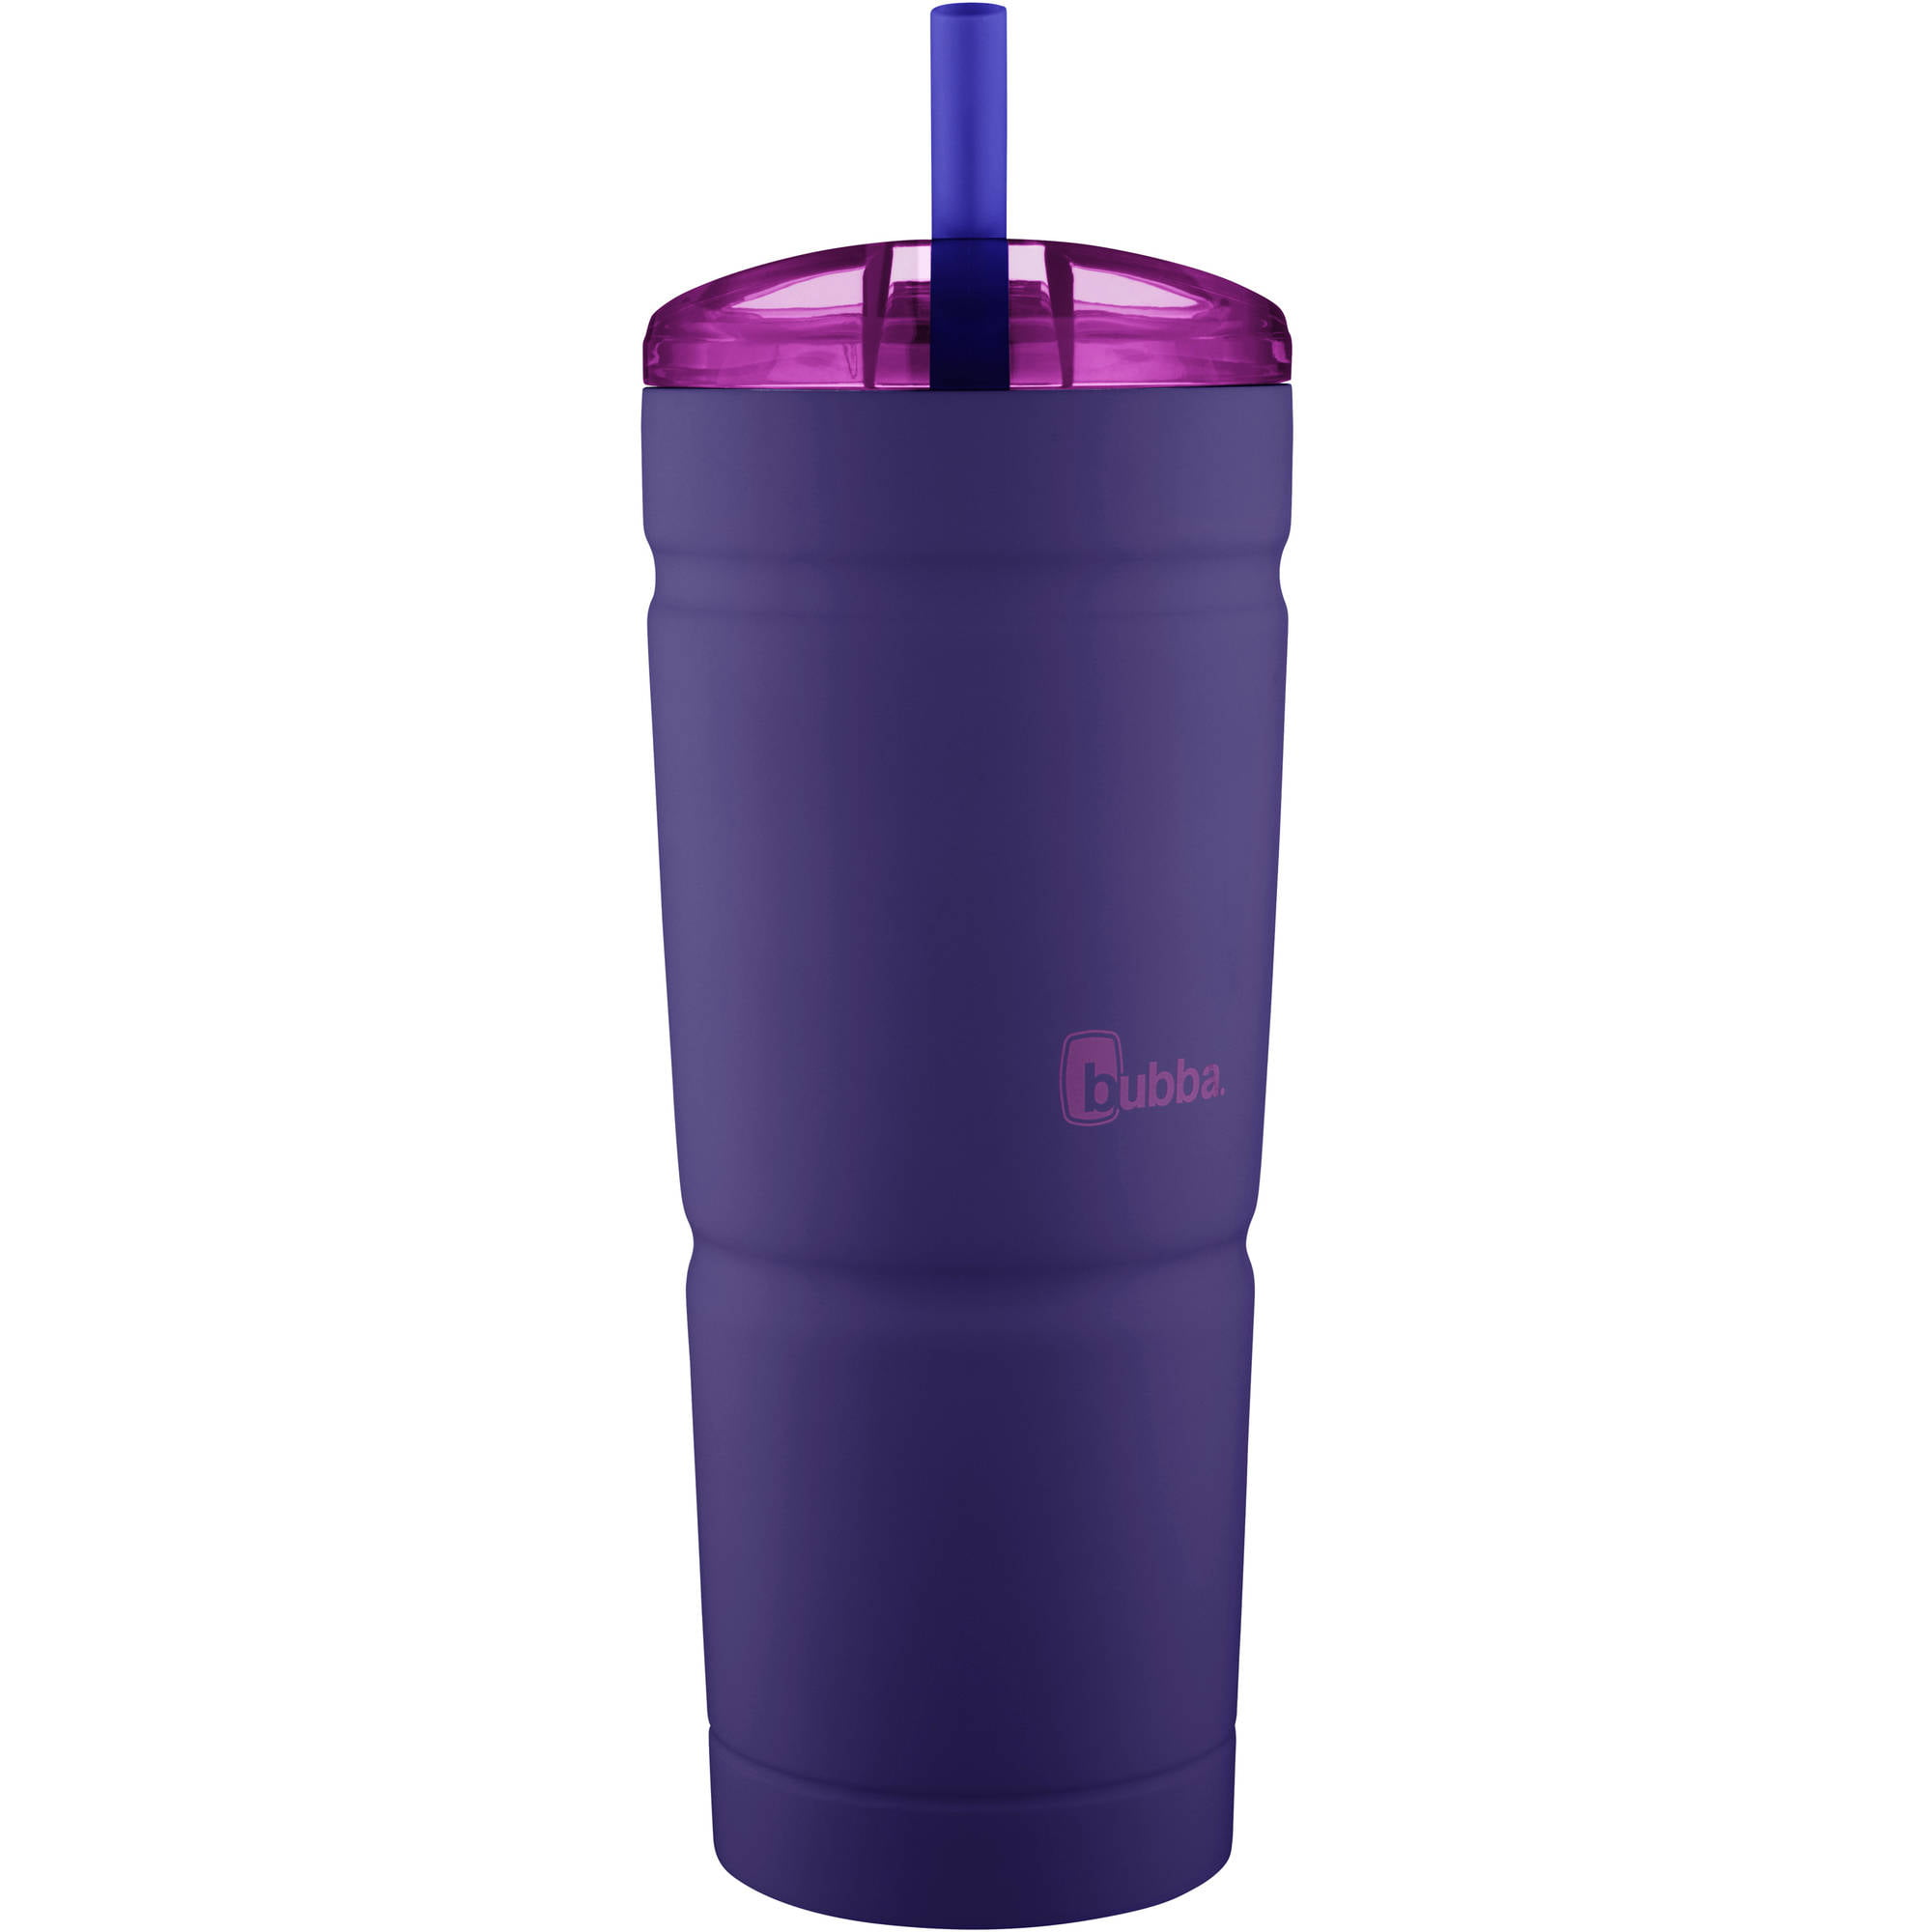 Bubba 24 Ounce Envy Insulated Stainless Steel Matte Purple Tumbler